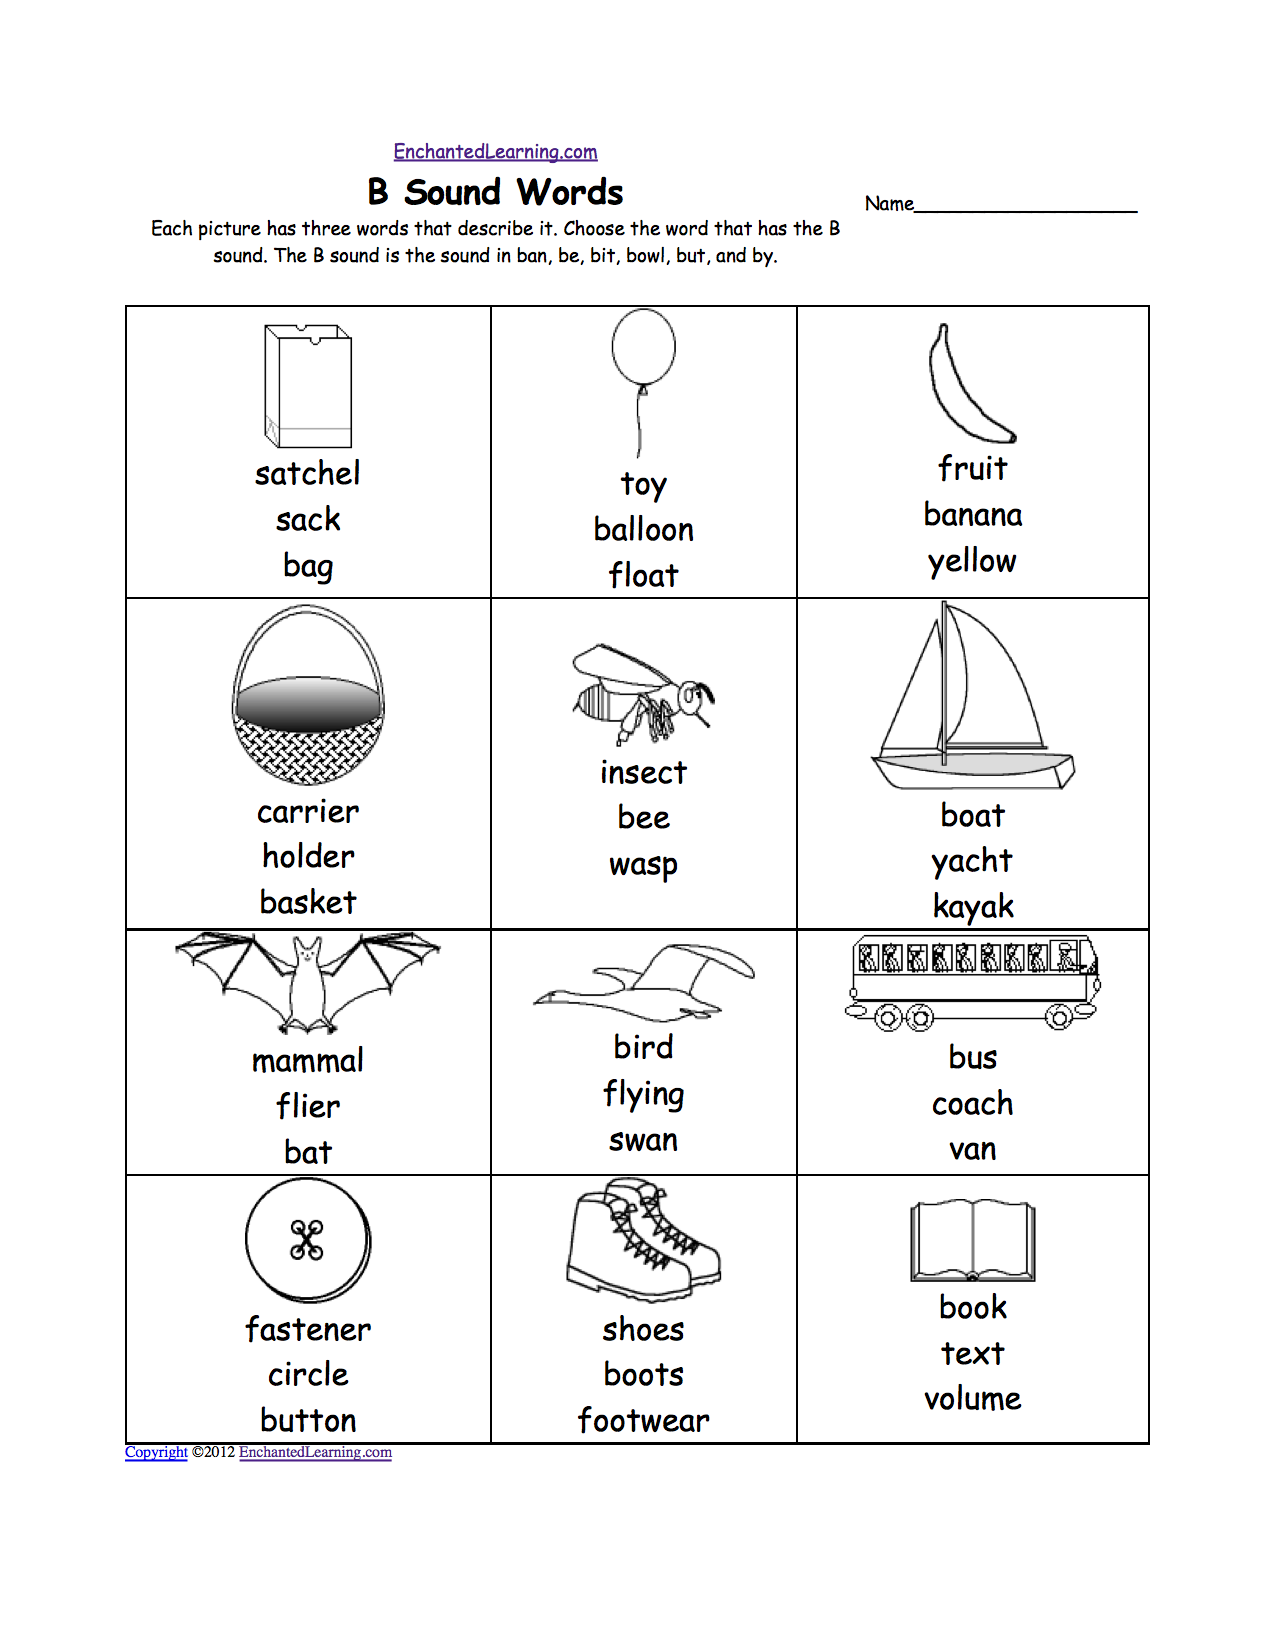 Weirdmailus  Marvellous Phonics Worksheets Multiple Choice Worksheets To Print  With Interesting Quotbquot Sound Phonics Worksheet Multiple Choice Each Picture Has Three Words That Describe It Choose The Word That Has A Quotbquot Sound The Quotbquot Sound Is The Sound  With Easy On The Eye Free Excel Worksheet Also Object Pronoun Worksheet In Addition Kindergarten Numbers Worksheets And Organic Naming Worksheet As Well As Impulse Control Worksheet Additionally Algebra  Worksheets Answers From Enchantedlearningcom With Weirdmailus  Interesting Phonics Worksheets Multiple Choice Worksheets To Print  With Easy On The Eye Quotbquot Sound Phonics Worksheet Multiple Choice Each Picture Has Three Words That Describe It Choose The Word That Has A Quotbquot Sound The Quotbquot Sound Is The Sound  And Marvellous Free Excel Worksheet Also Object Pronoun Worksheet In Addition Kindergarten Numbers Worksheets From Enchantedlearningcom